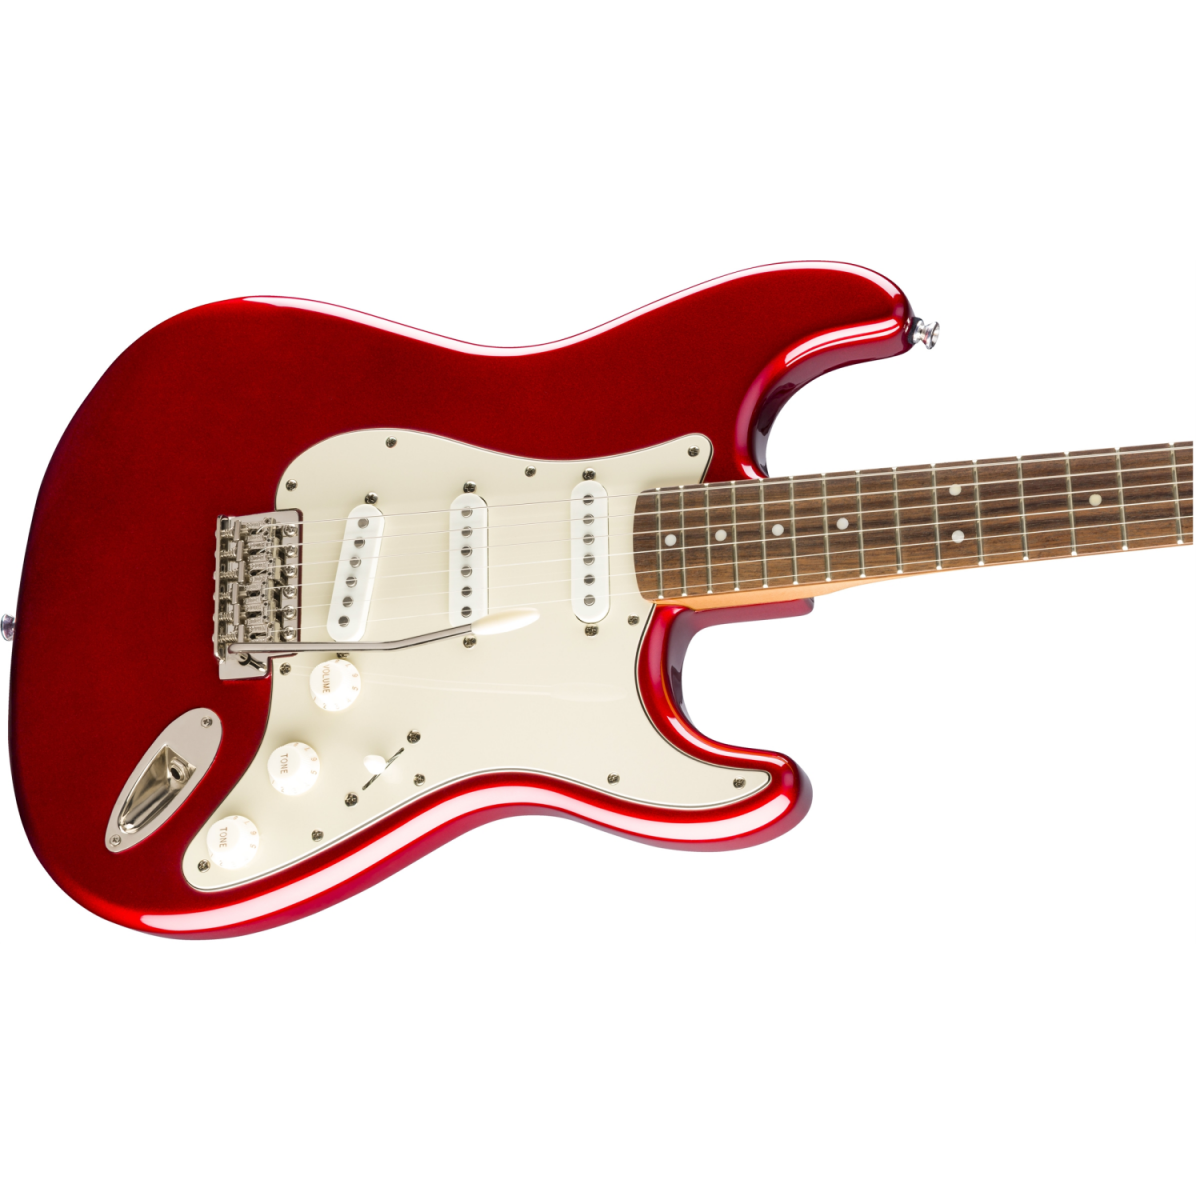 Squier - Classic Vibe '60s Stratocaster - Laurel Fingerboard – Candy Apple Red - 0374010509-front3